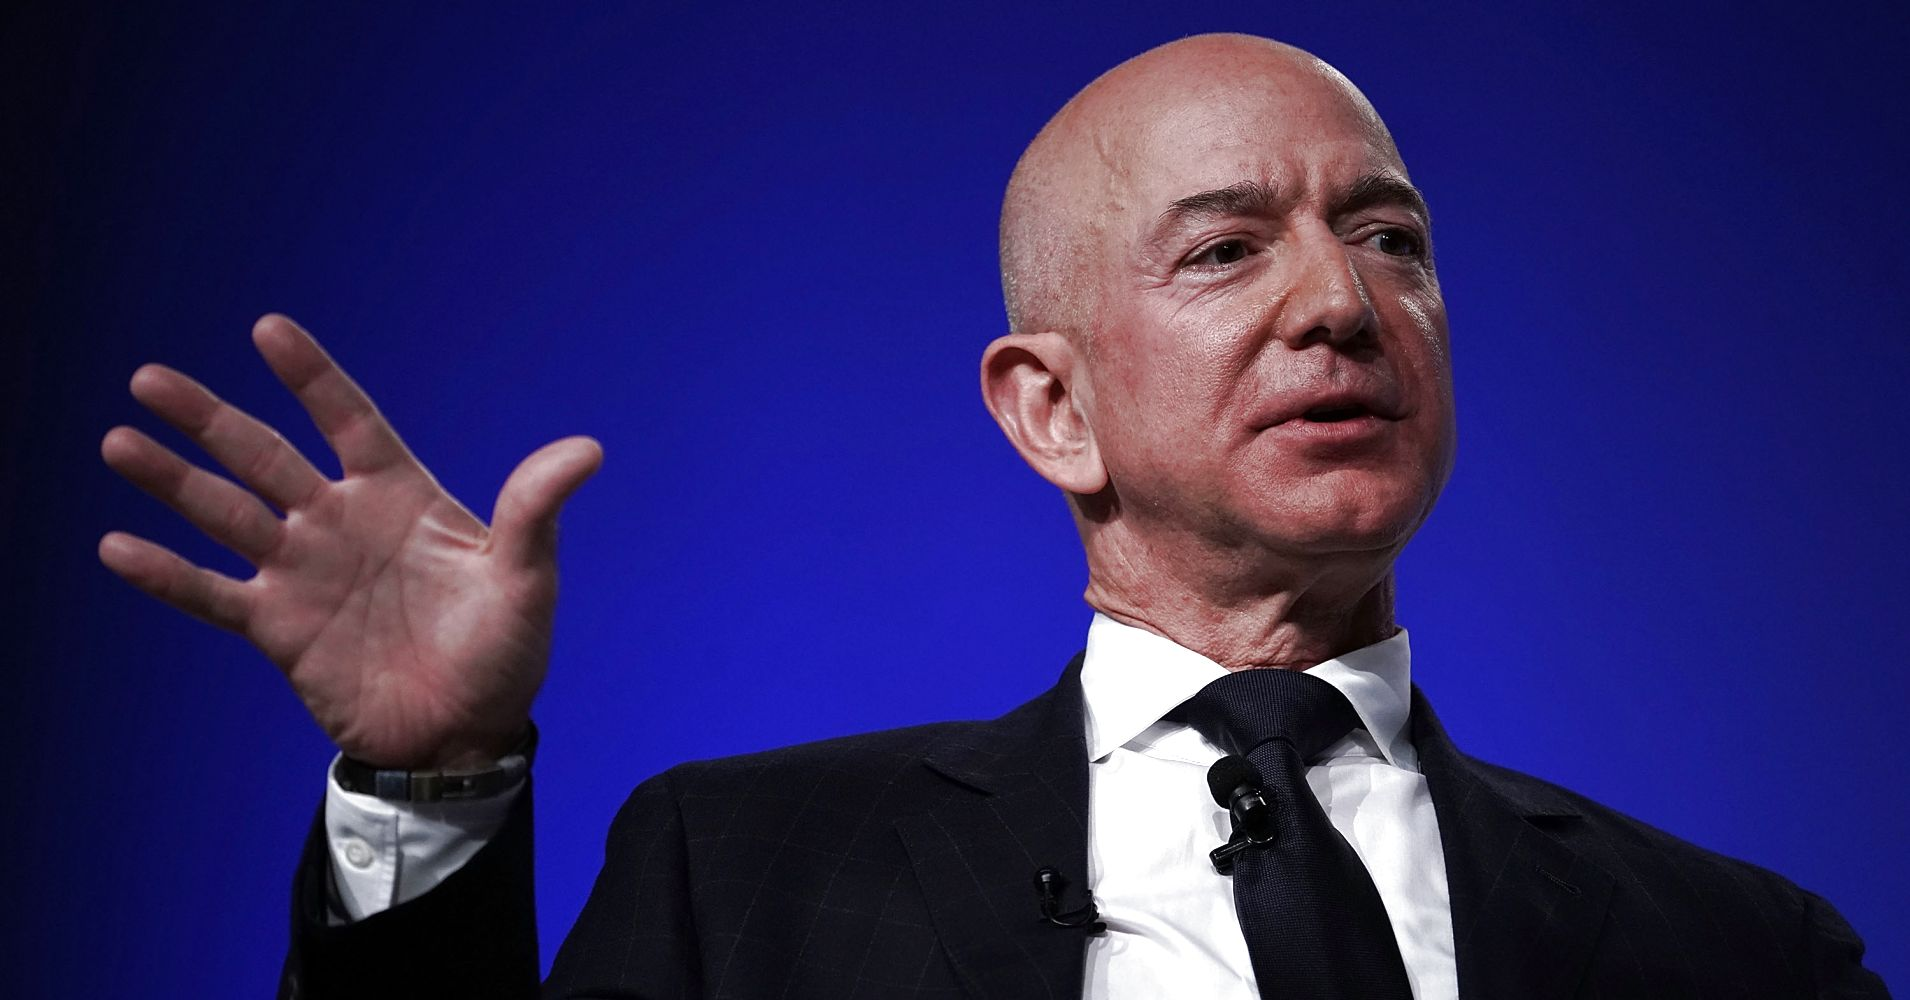 Amazon, derided as a 'job killer,' actually boosts local employment and business, Morgan Stanley says